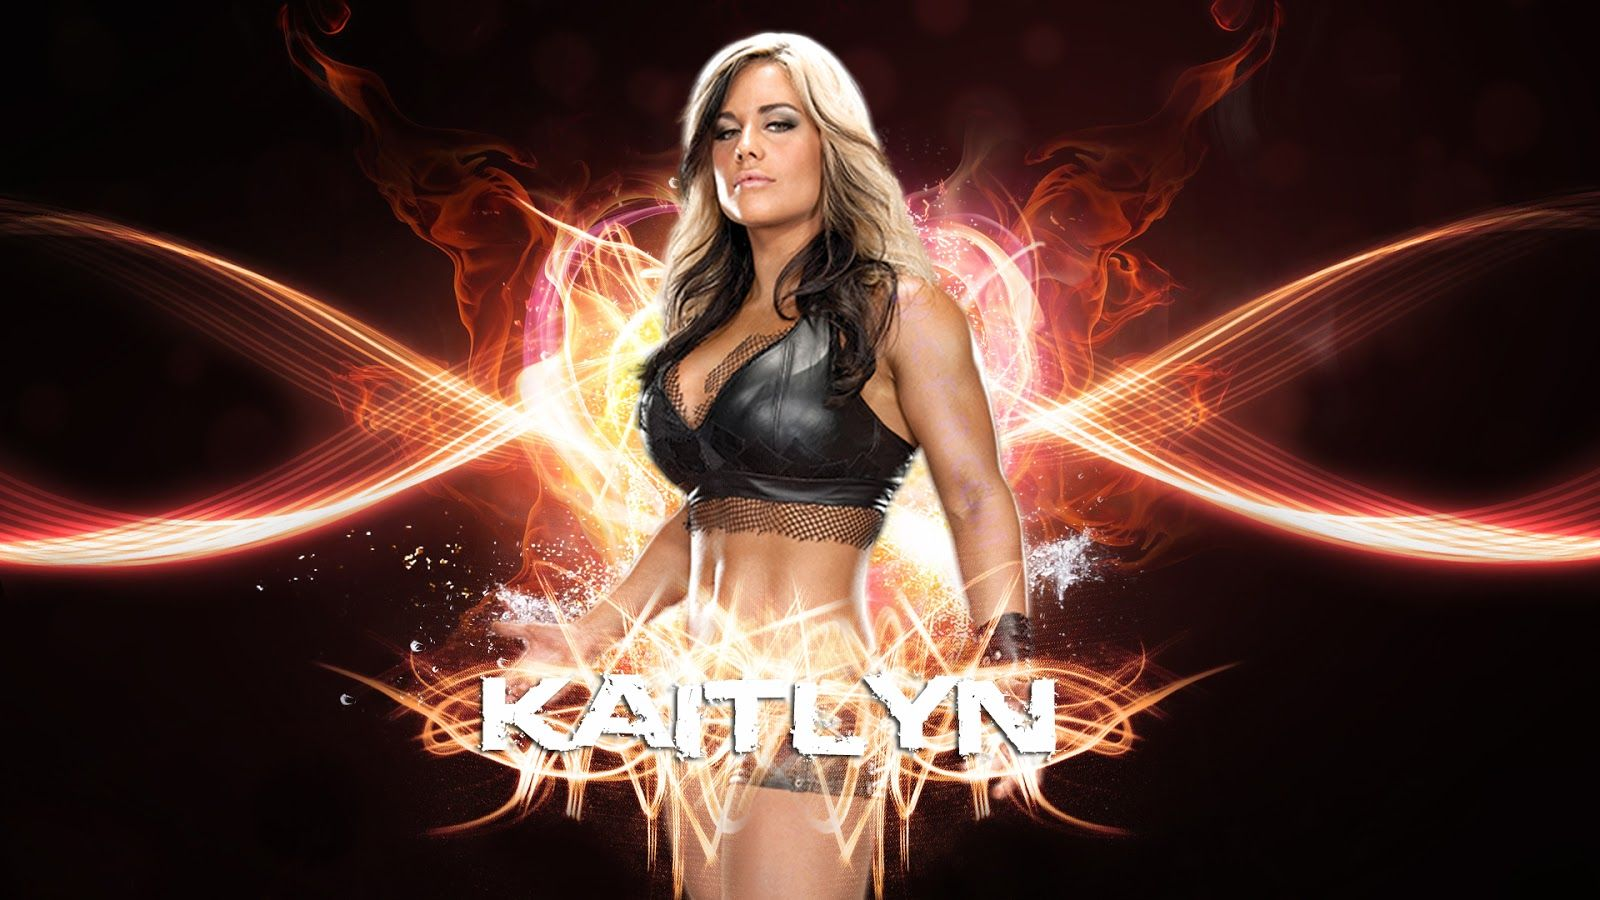 Wwe Divas Images And Latest Sports News Kaitlyn Diva Hd Wallpapers Free Download Kaitlyn Wwe Divas Diva